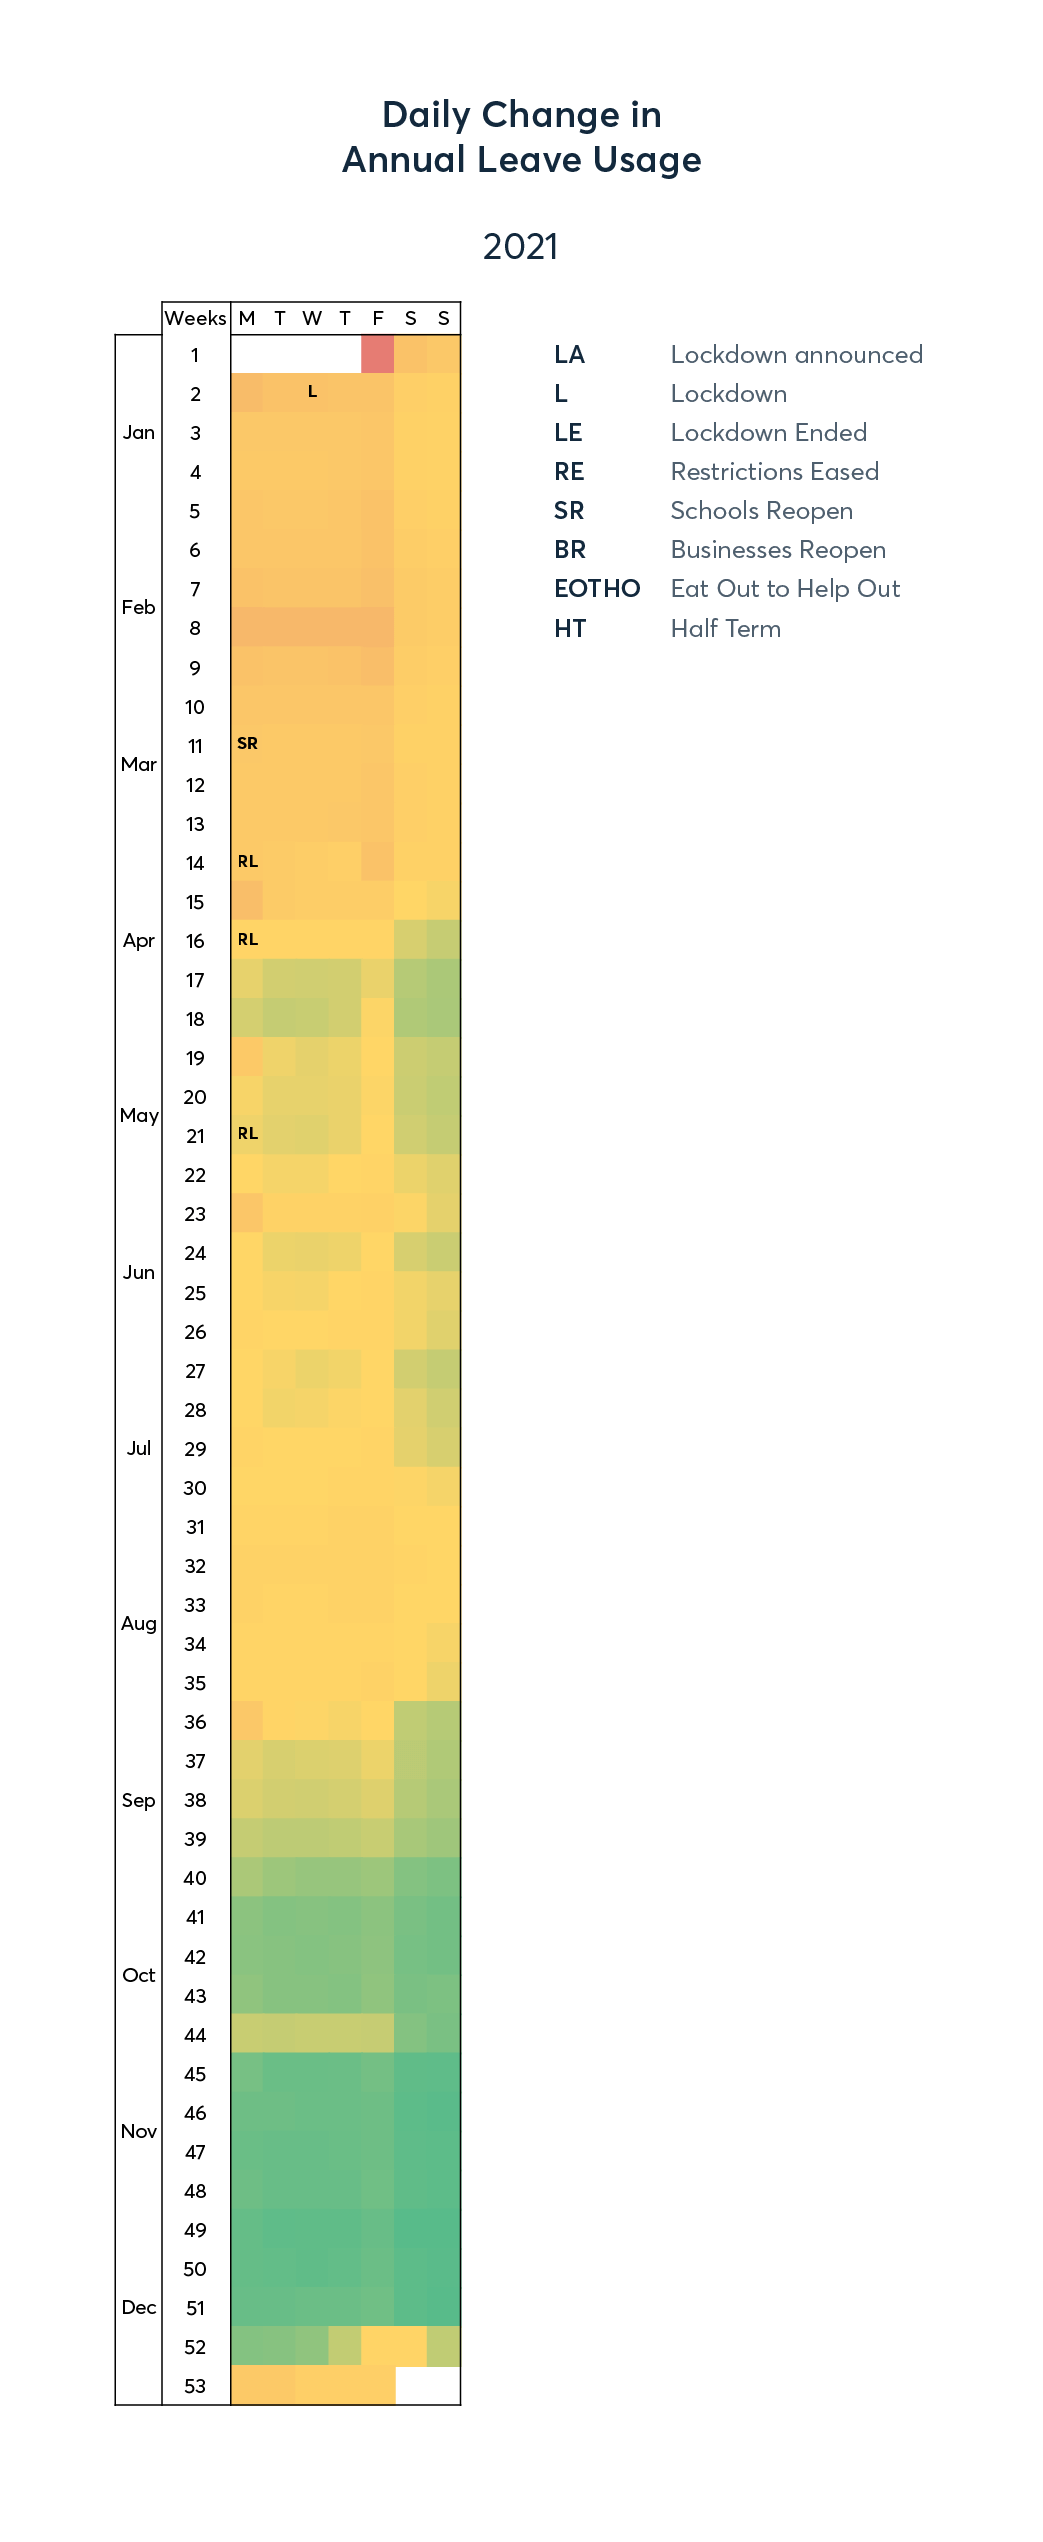 Heatmap showing daily changes in annual leave usage for 2021